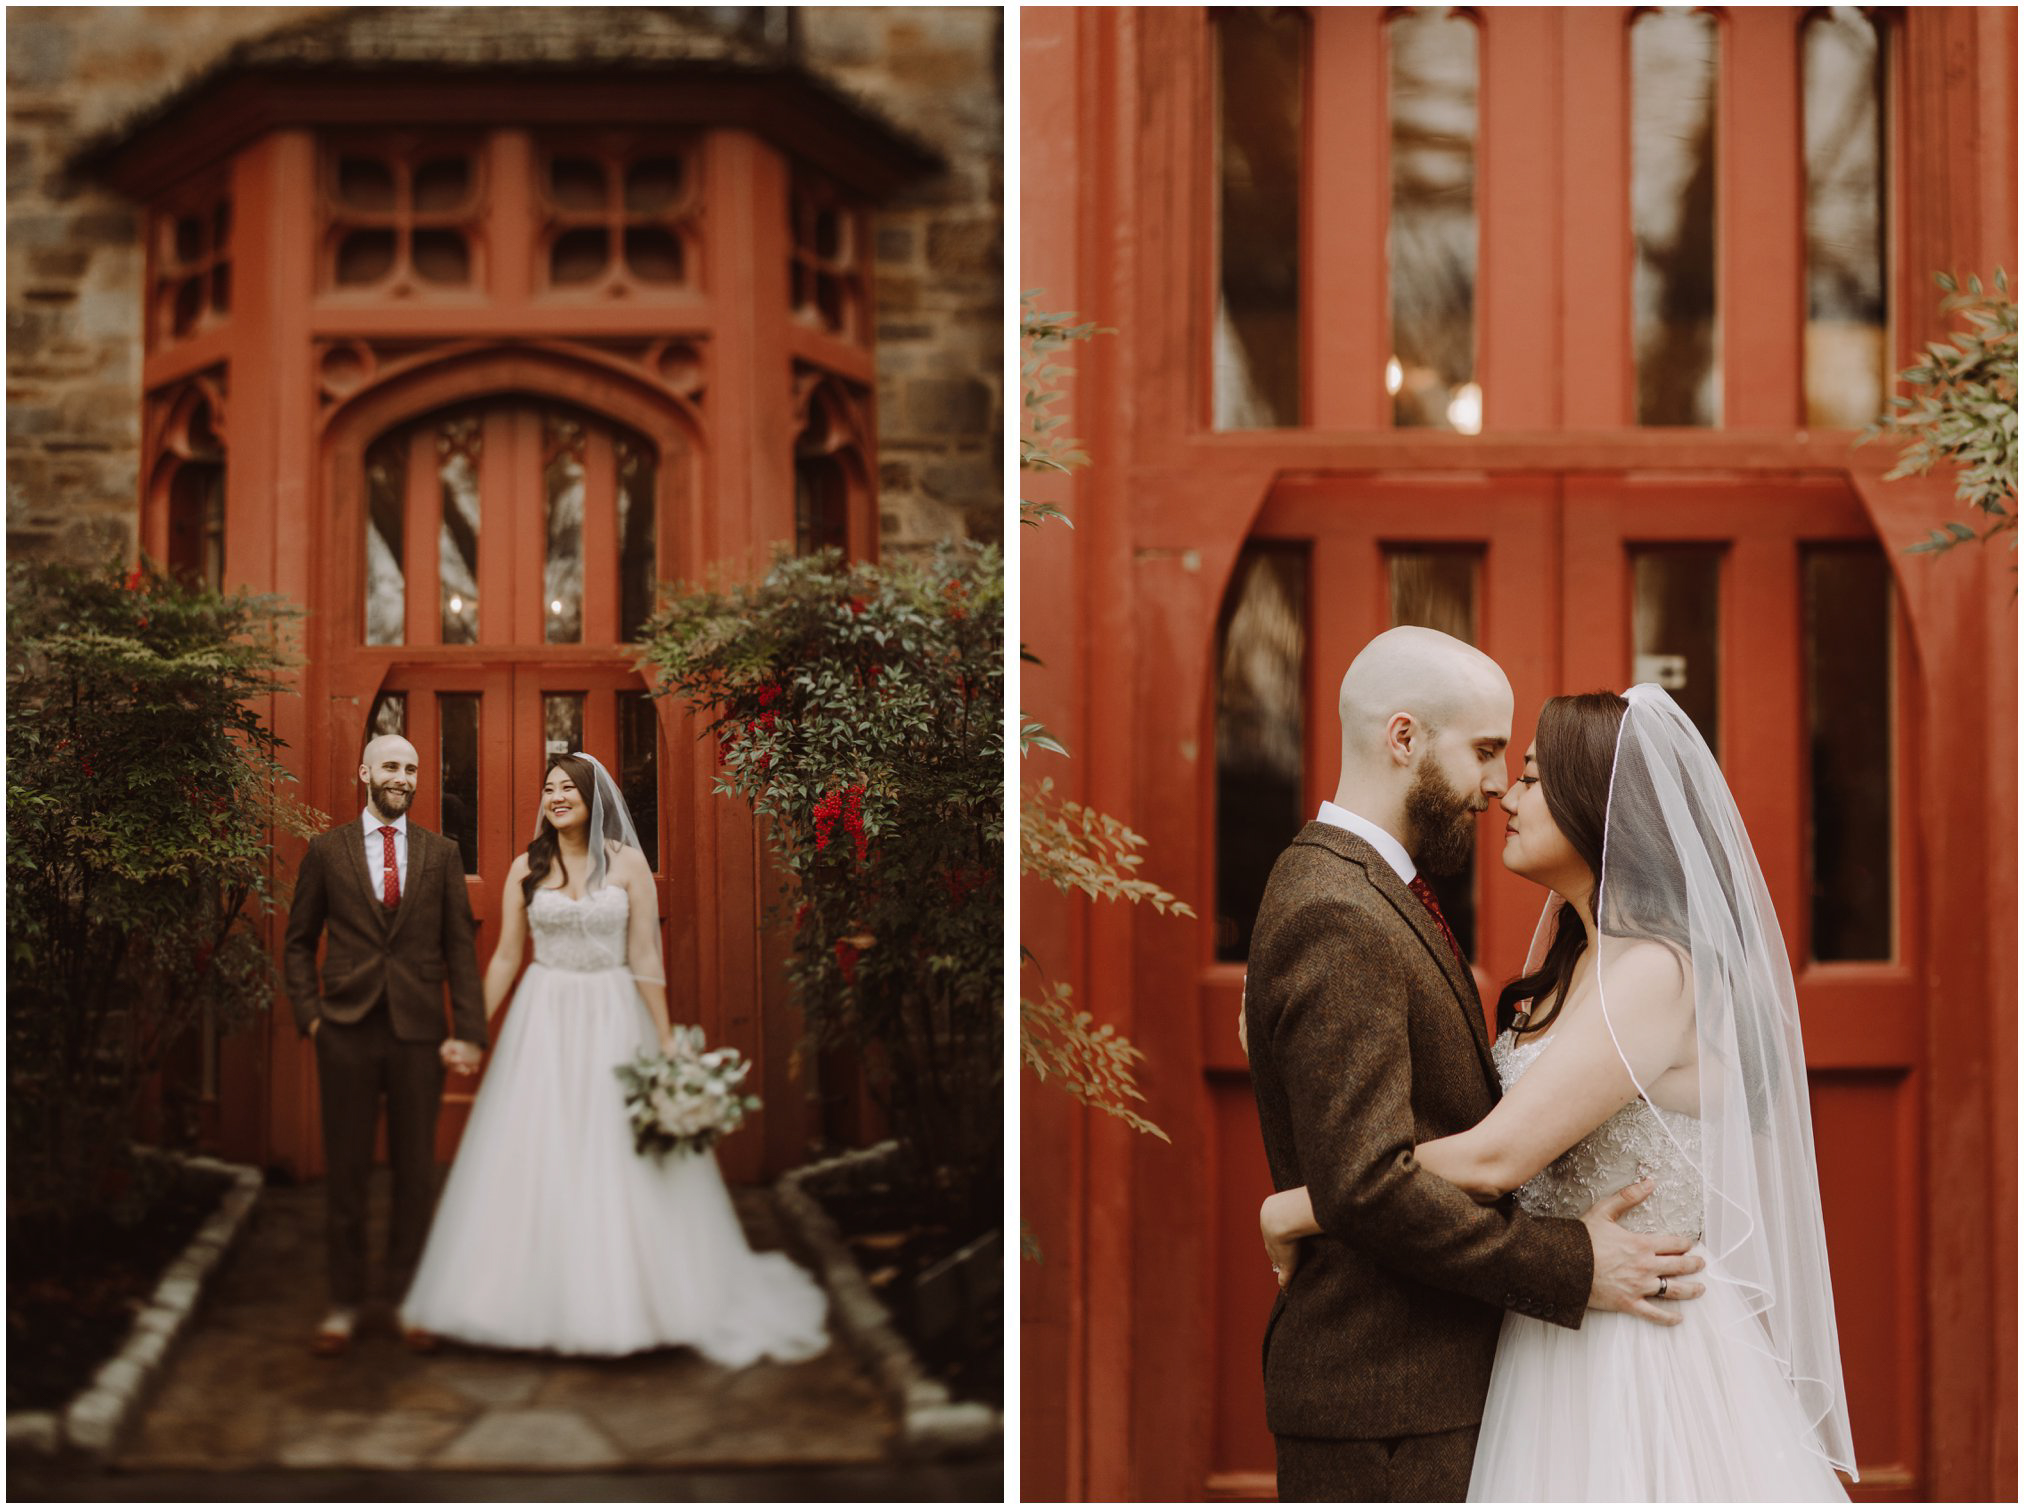 Winter Wedding at Cloisters Castle Bride and Groom Pictures